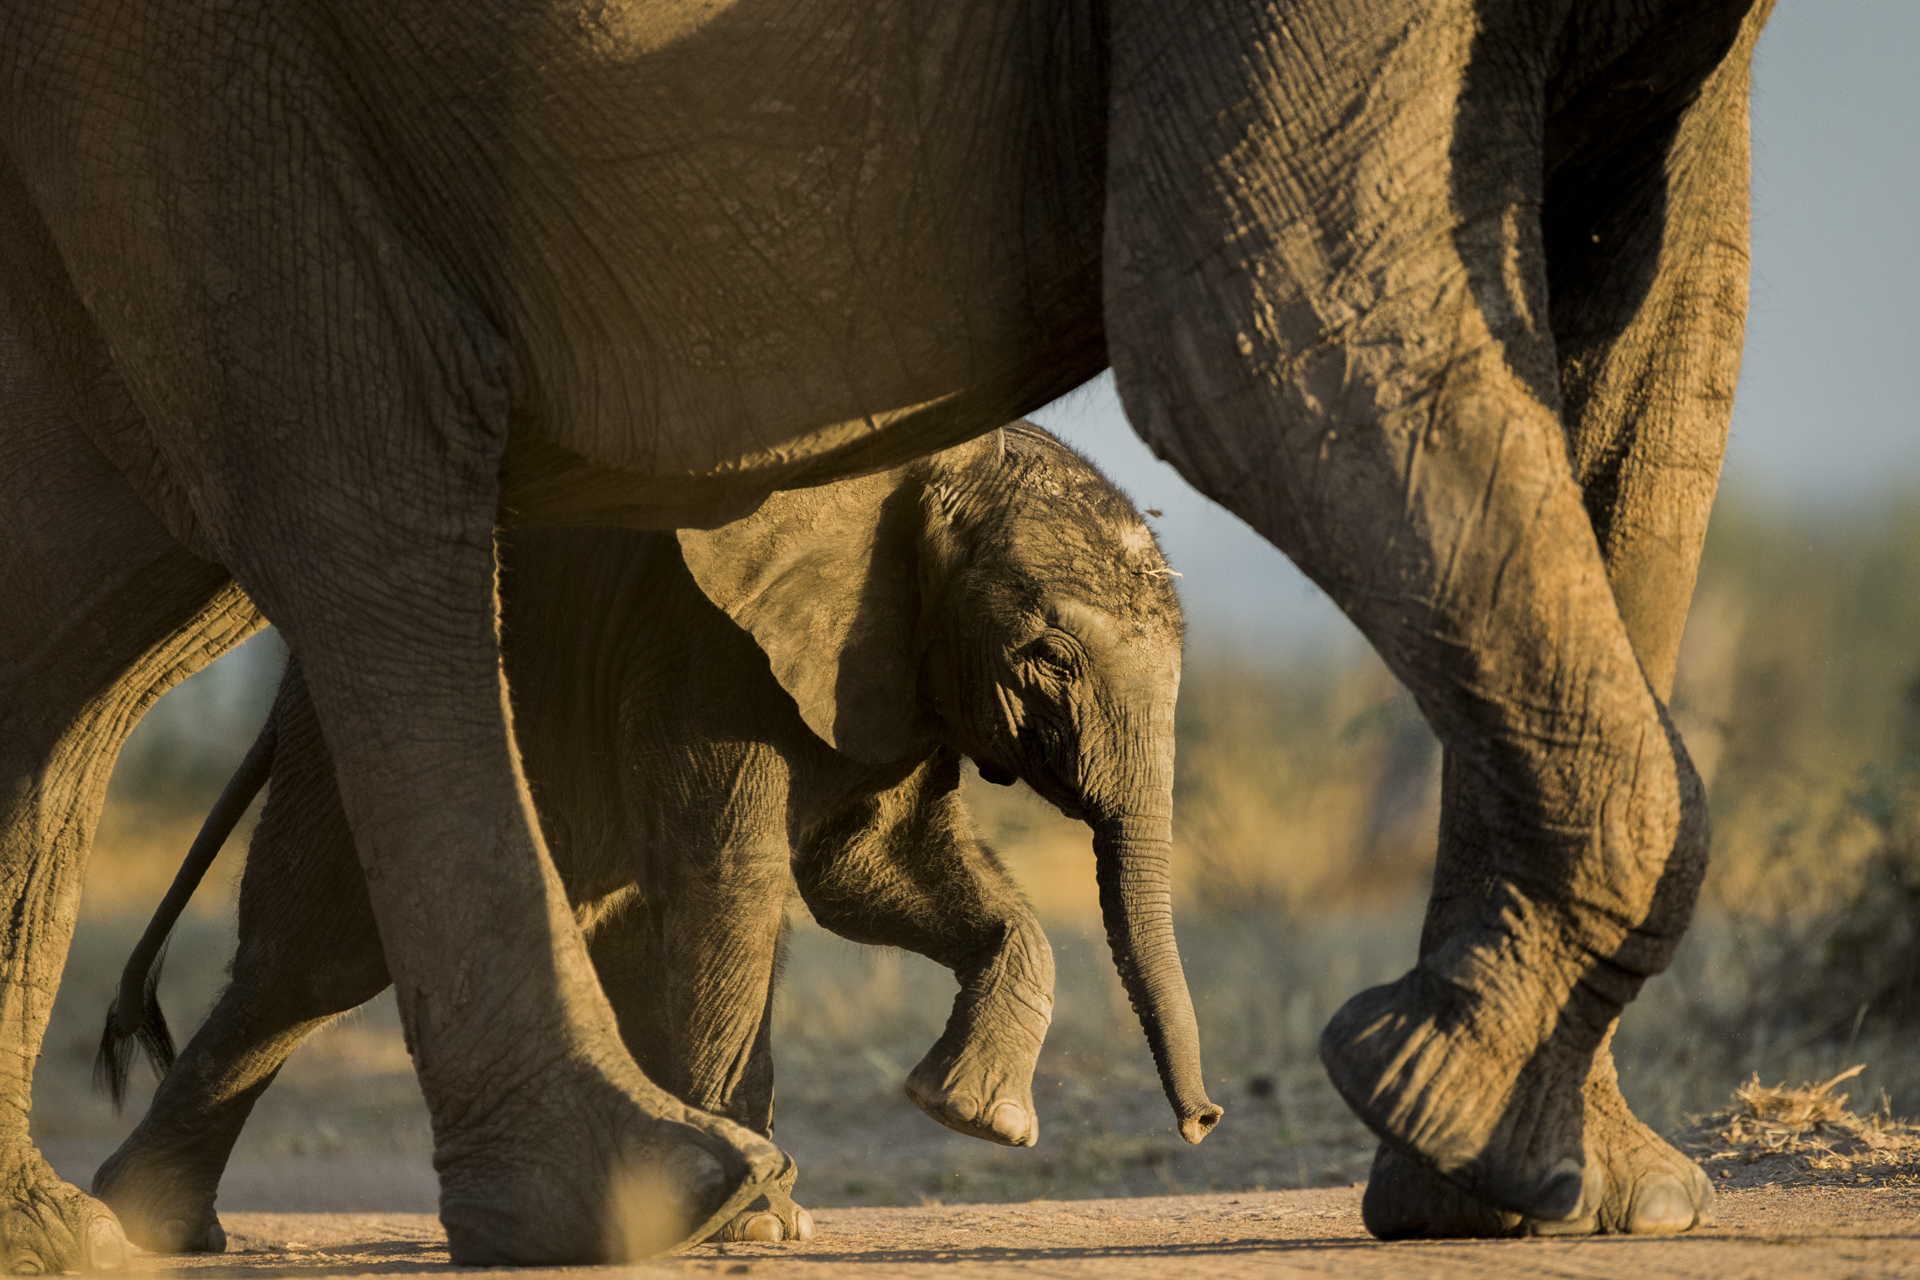 An elephant calf follows in its mothers footsteps.